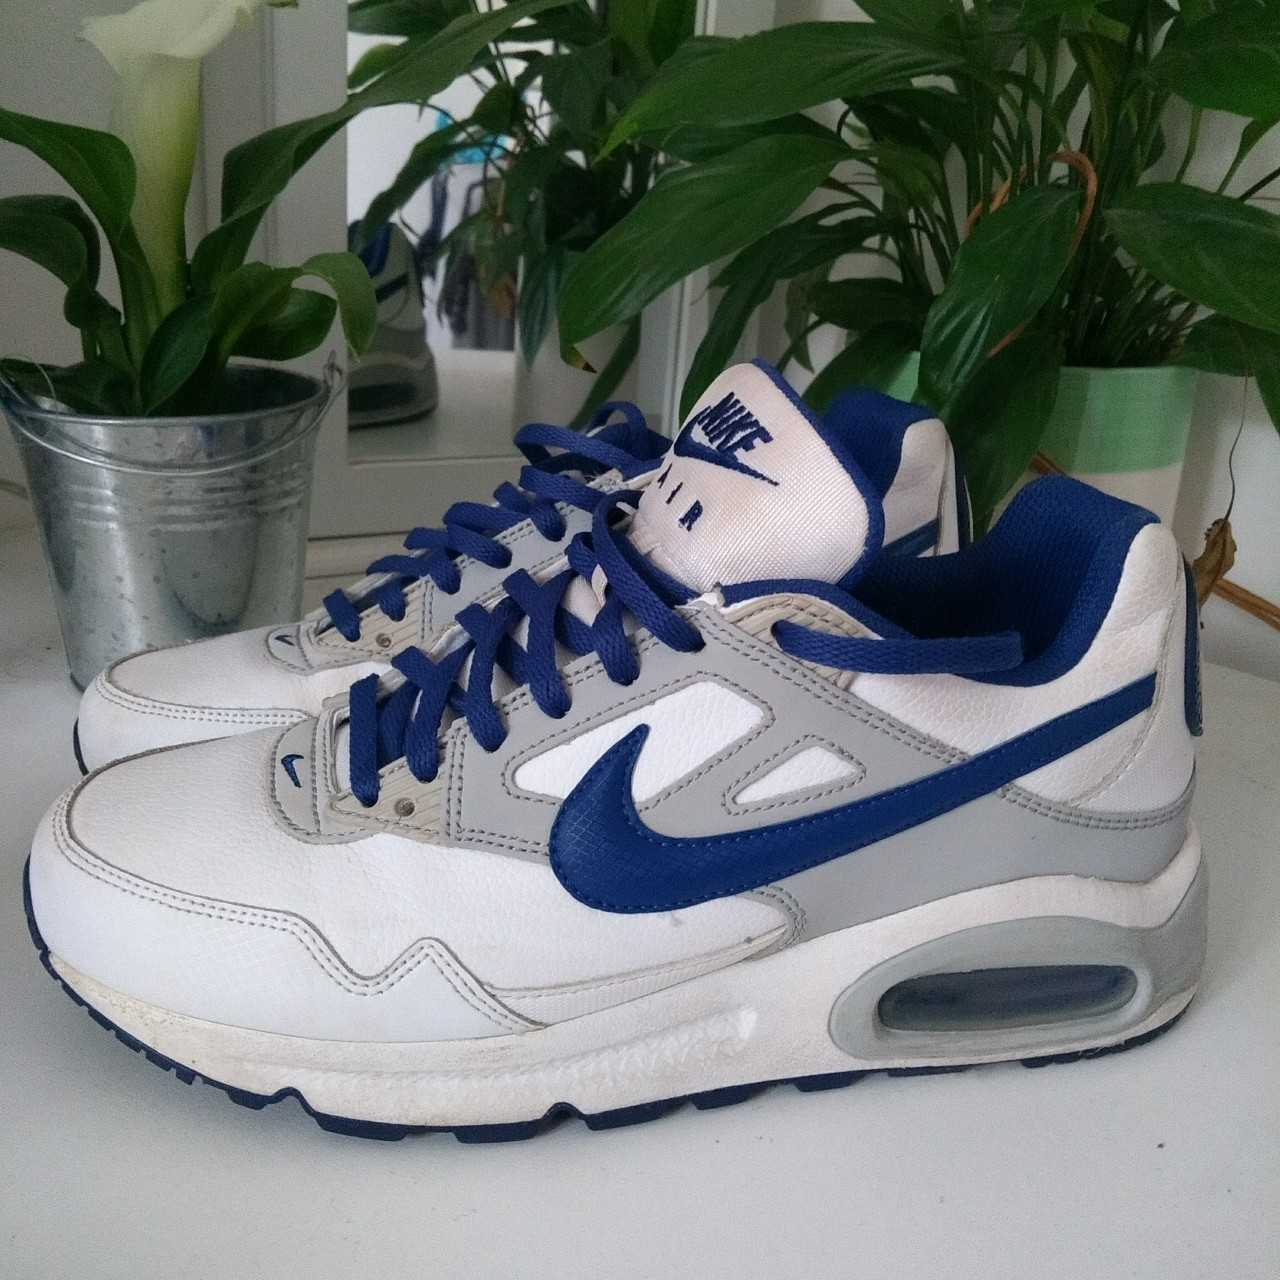 Old Nike and Maxwhiteblue Air school greyDepop VzjMLqpGSU